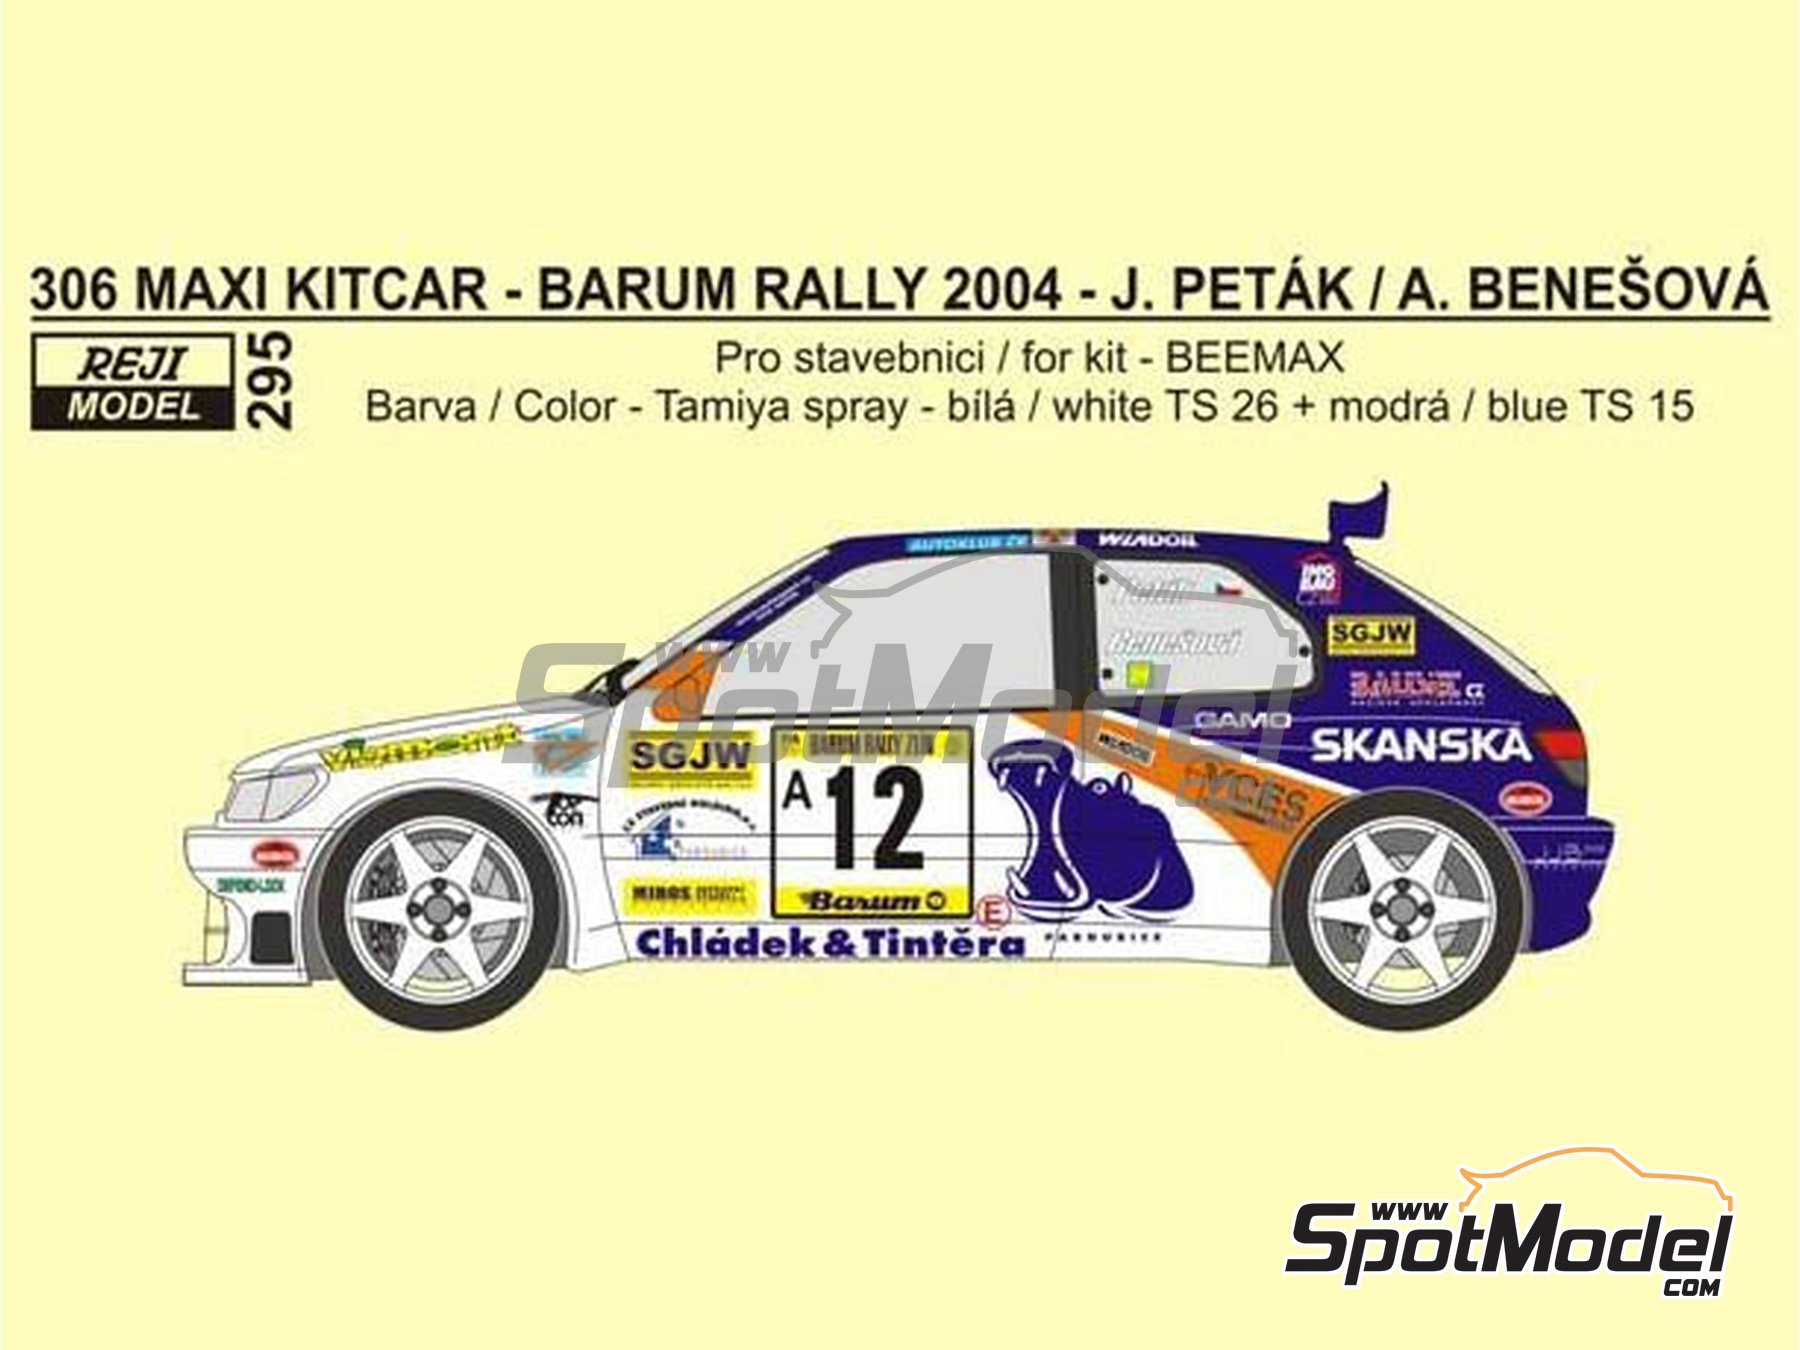 Image 1: Peugeot 306 Maxi Kitcar - Barum Czech Rally 2004 | Marking / livery in 1/24 scale manufactured by Reji Model (ref. REJI-295)